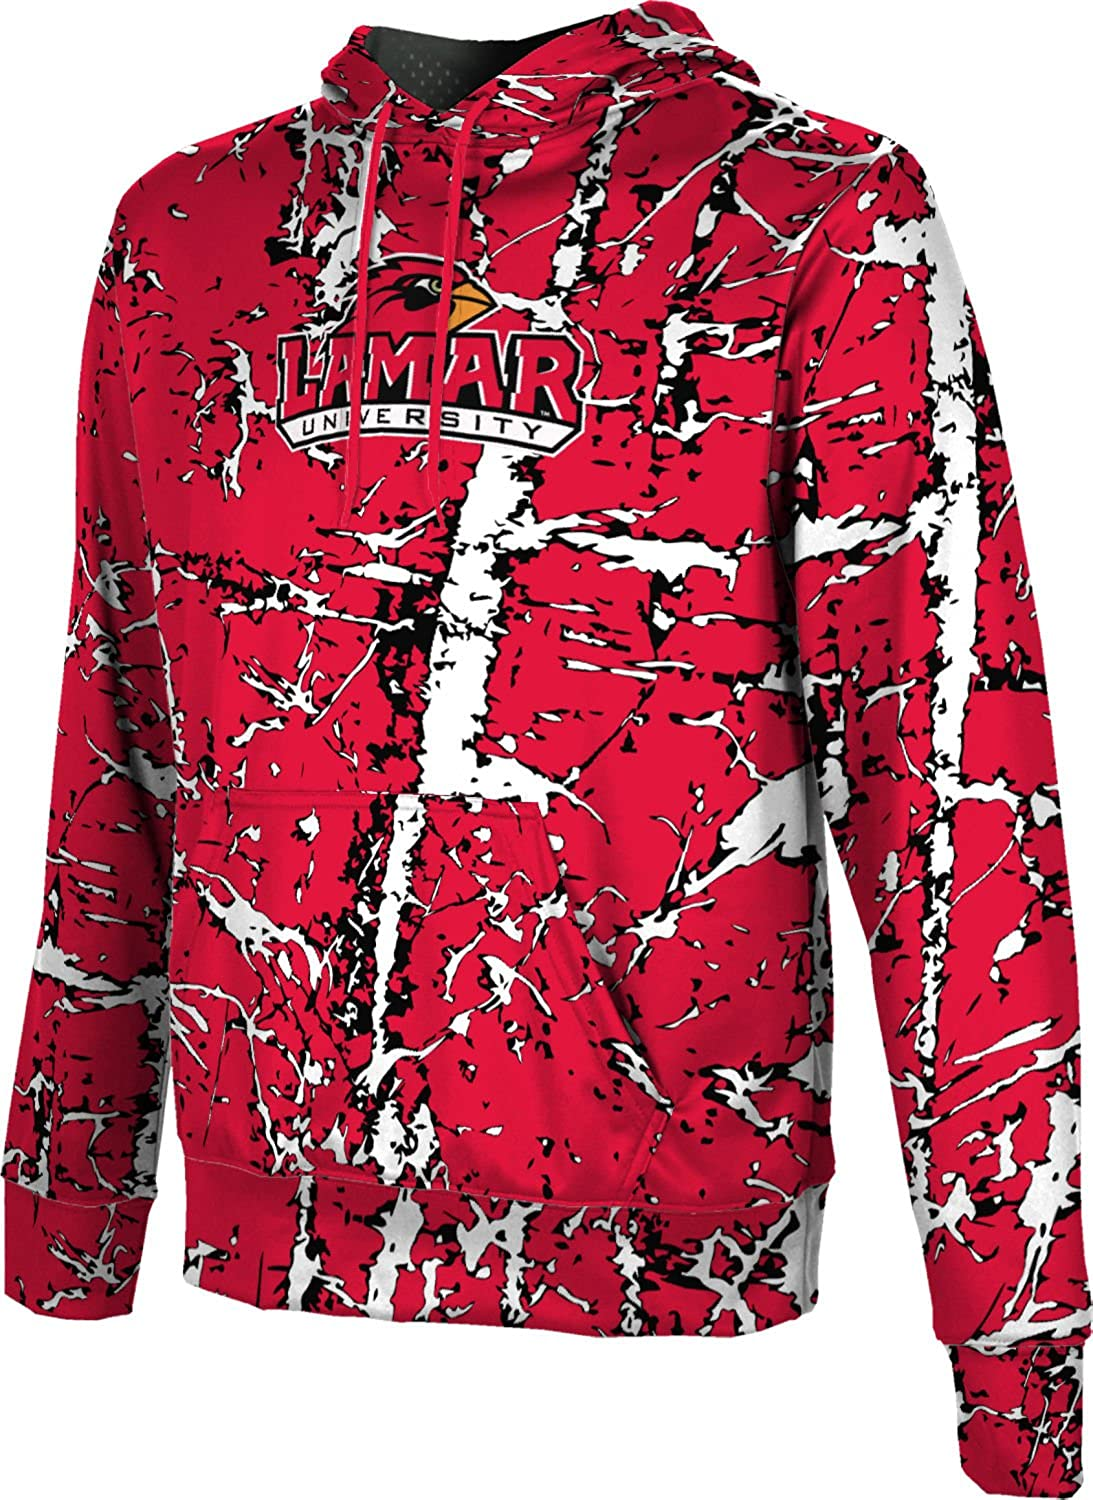 ProSphere Lamar University Boys Hoodie Sweatshirt Distressed